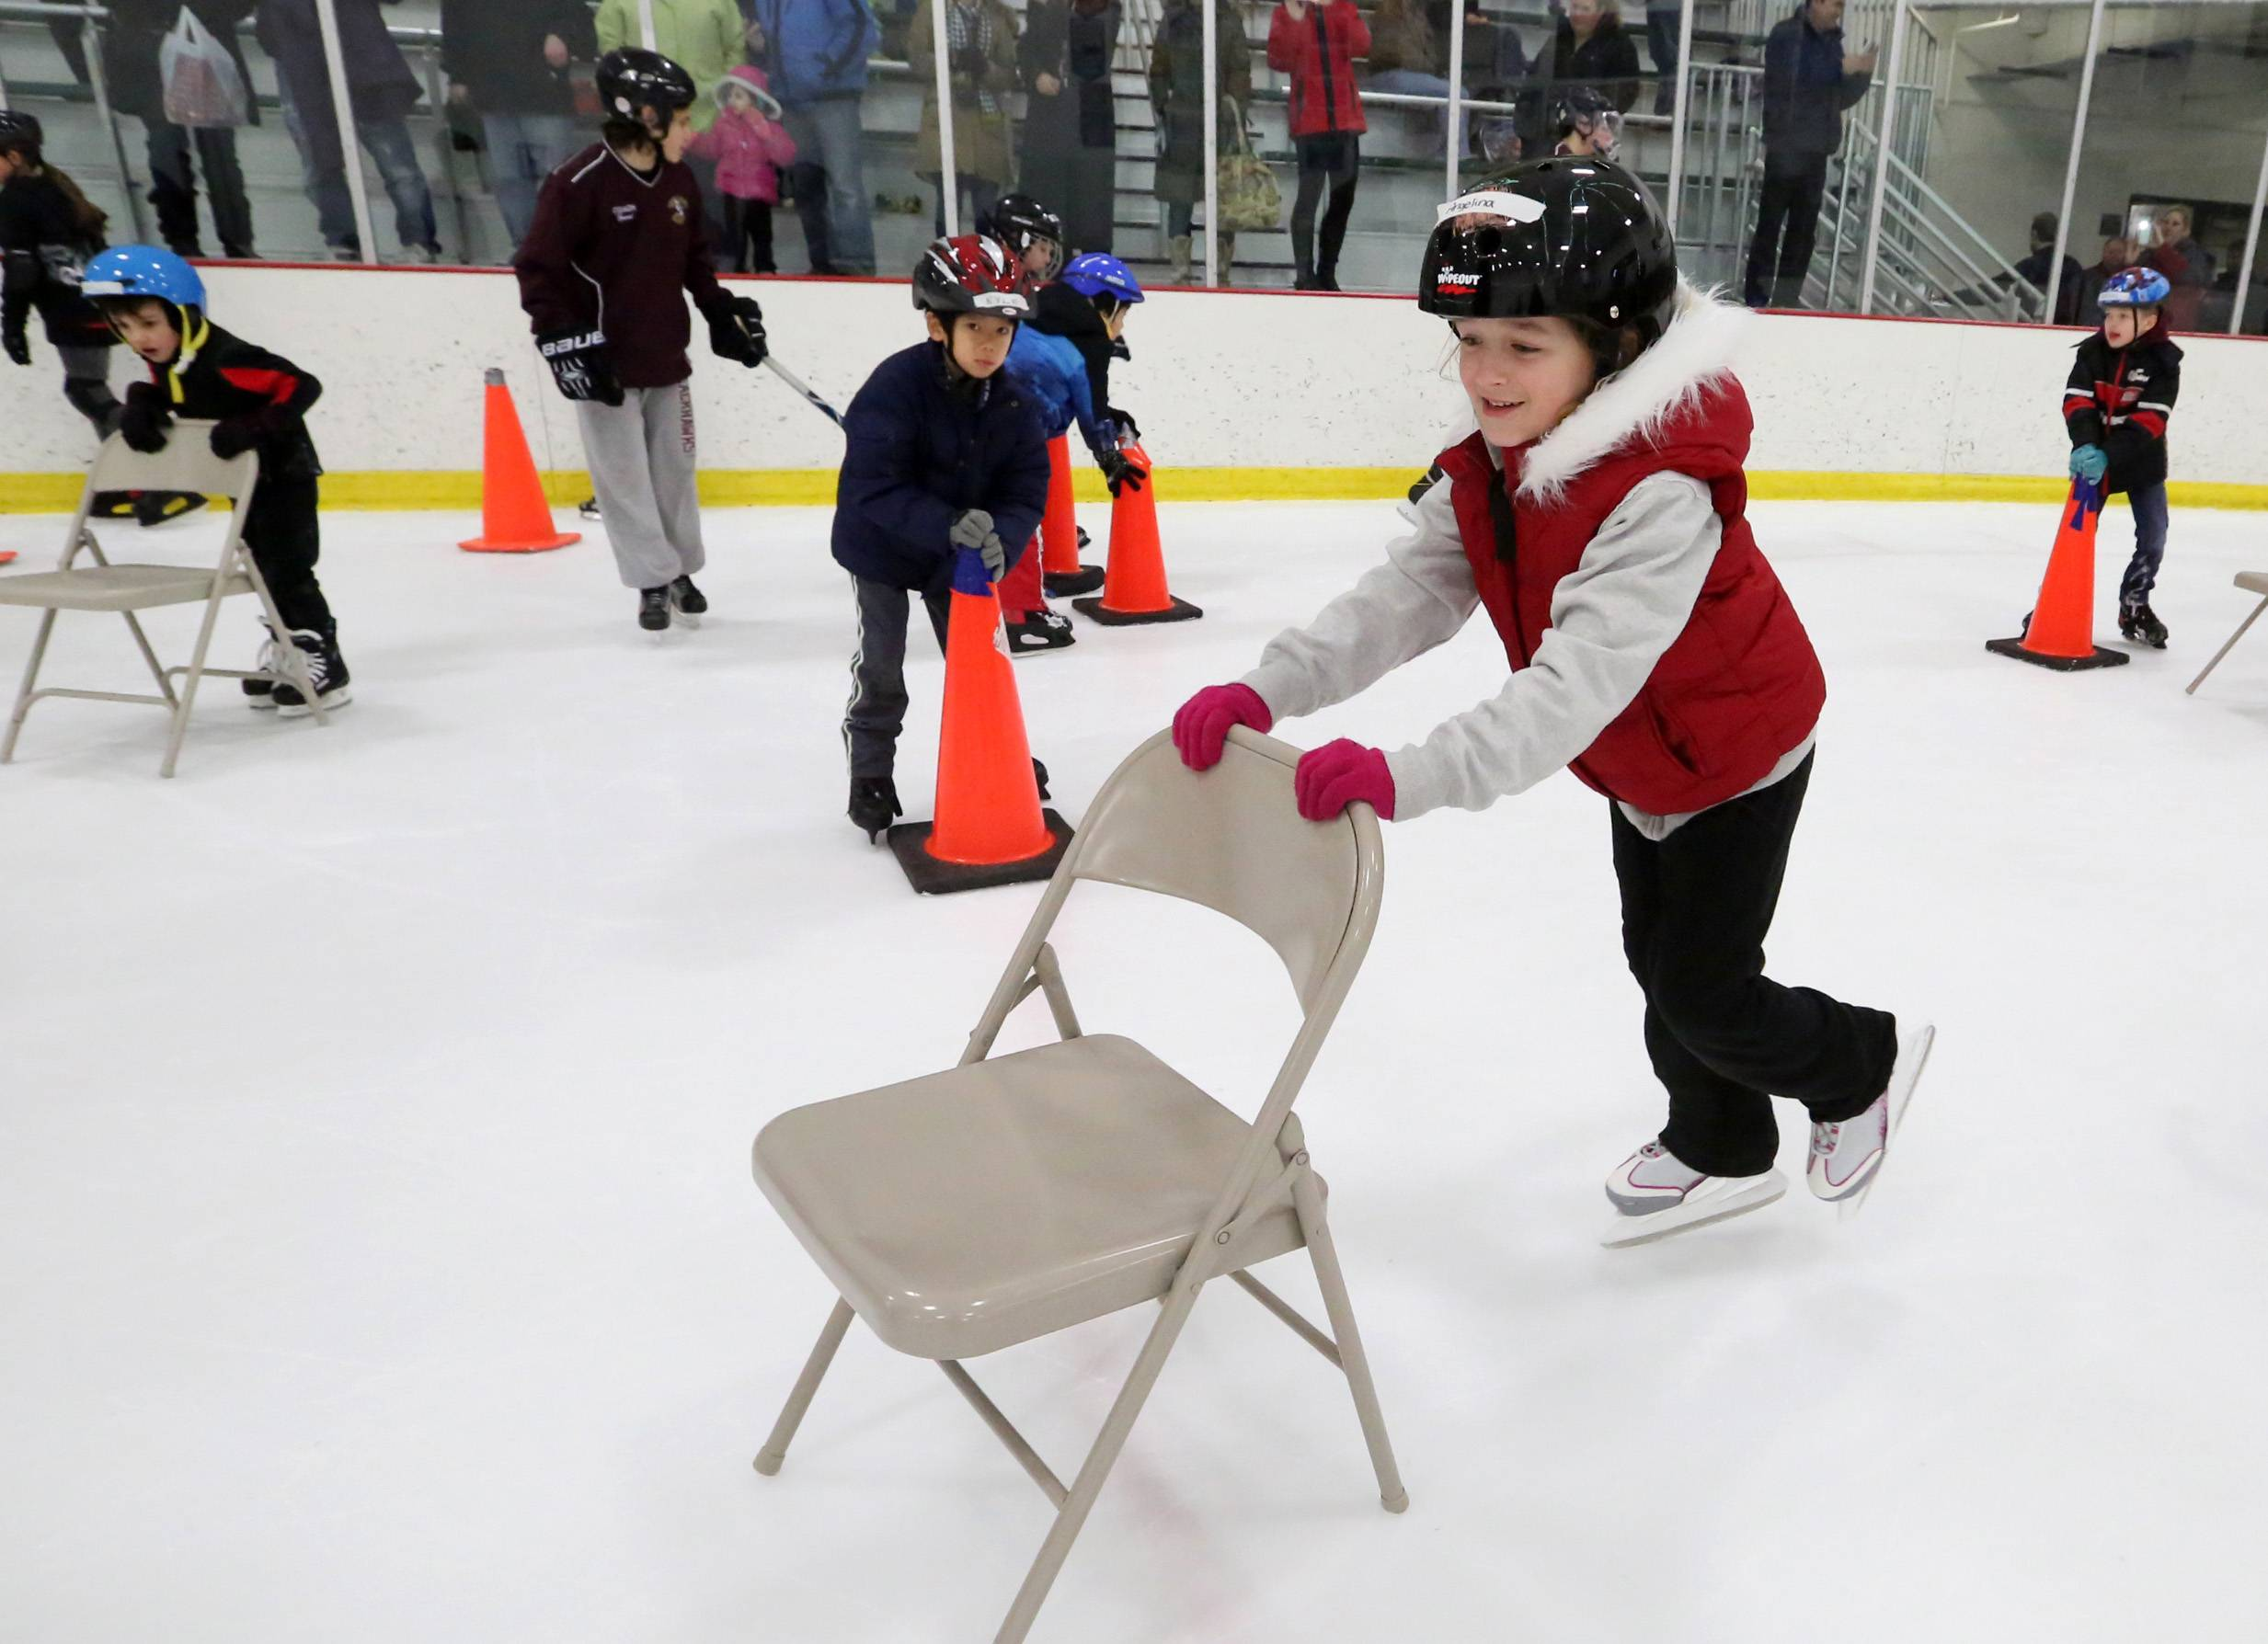 Angelina Sadowski, 6, of Streamwood, learns to stay up on her skates using a folding chair at USA Hockey's annual Try Hockey For Free event at the Triphahn Center on Saturday in Hoffman Estates.